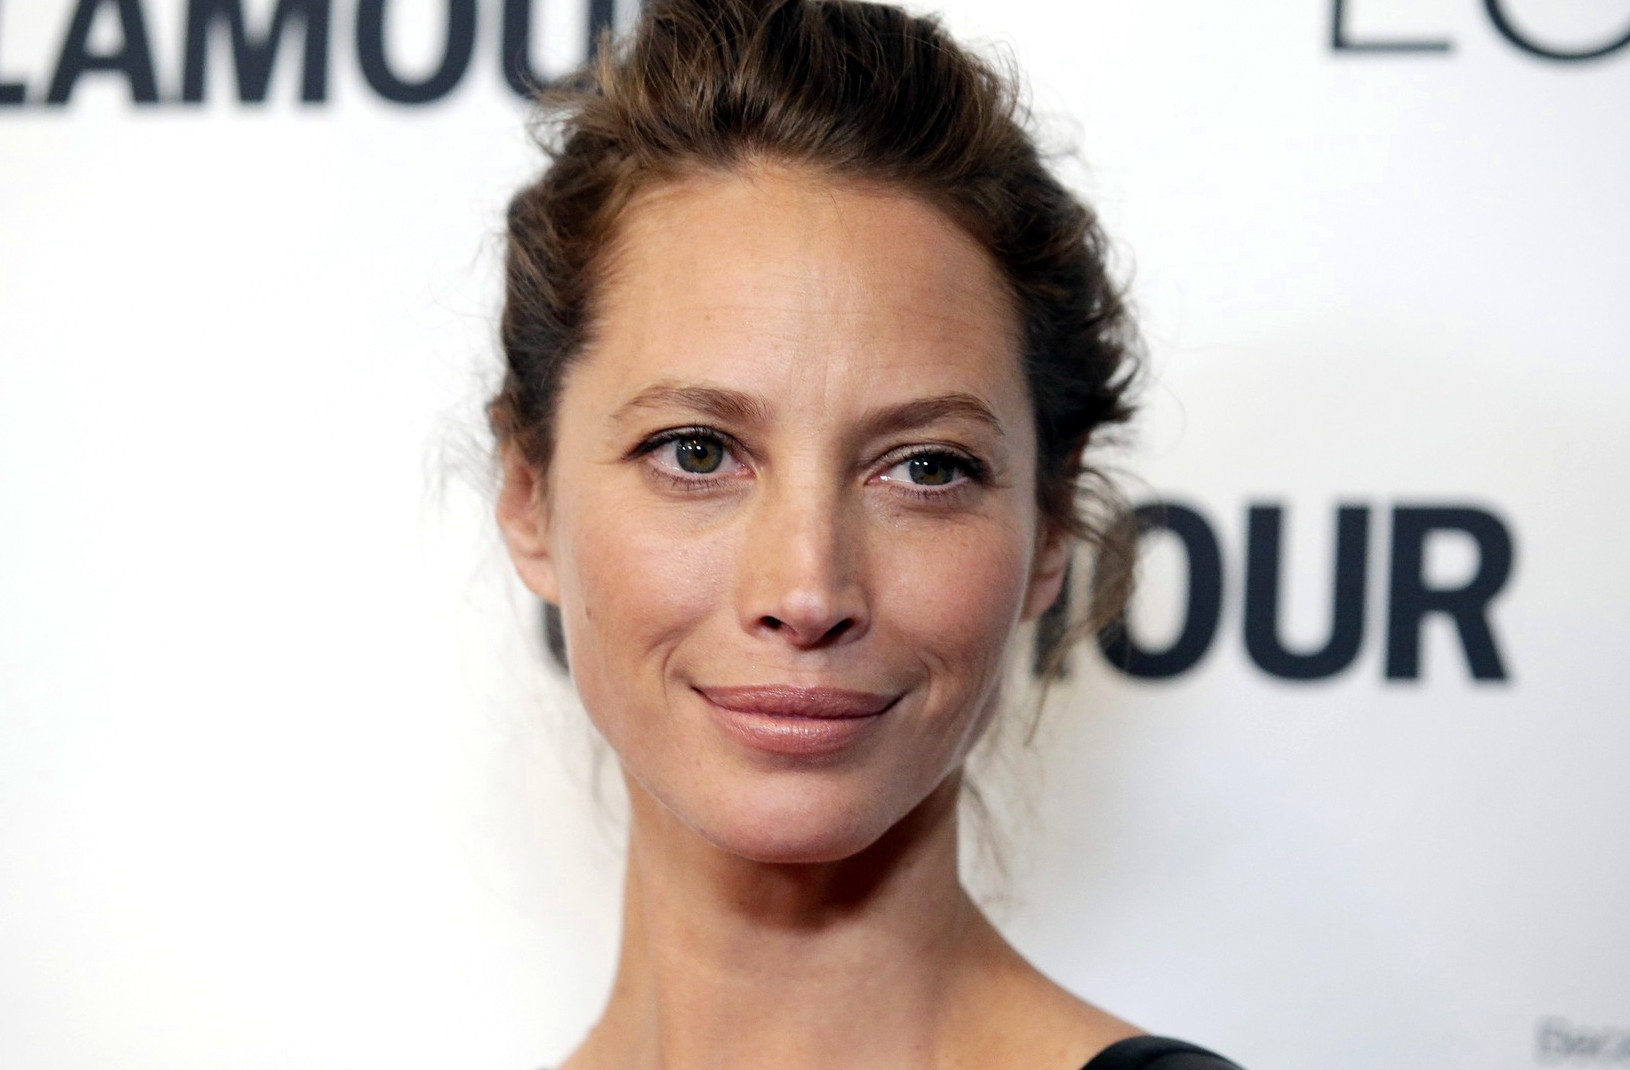 Christy Turlington Burns arrives on the red carpet at the 2013 Glamour Women of the Year Awards, sponsored by L'Oreal Paris, to honor courageous and inspiring women who are changing the world on November 11, 2013 in New York City., Image: 176486406, License: Rights-managed, Restrictions: , Model Release: no, Credit line: Profimedia, UPI